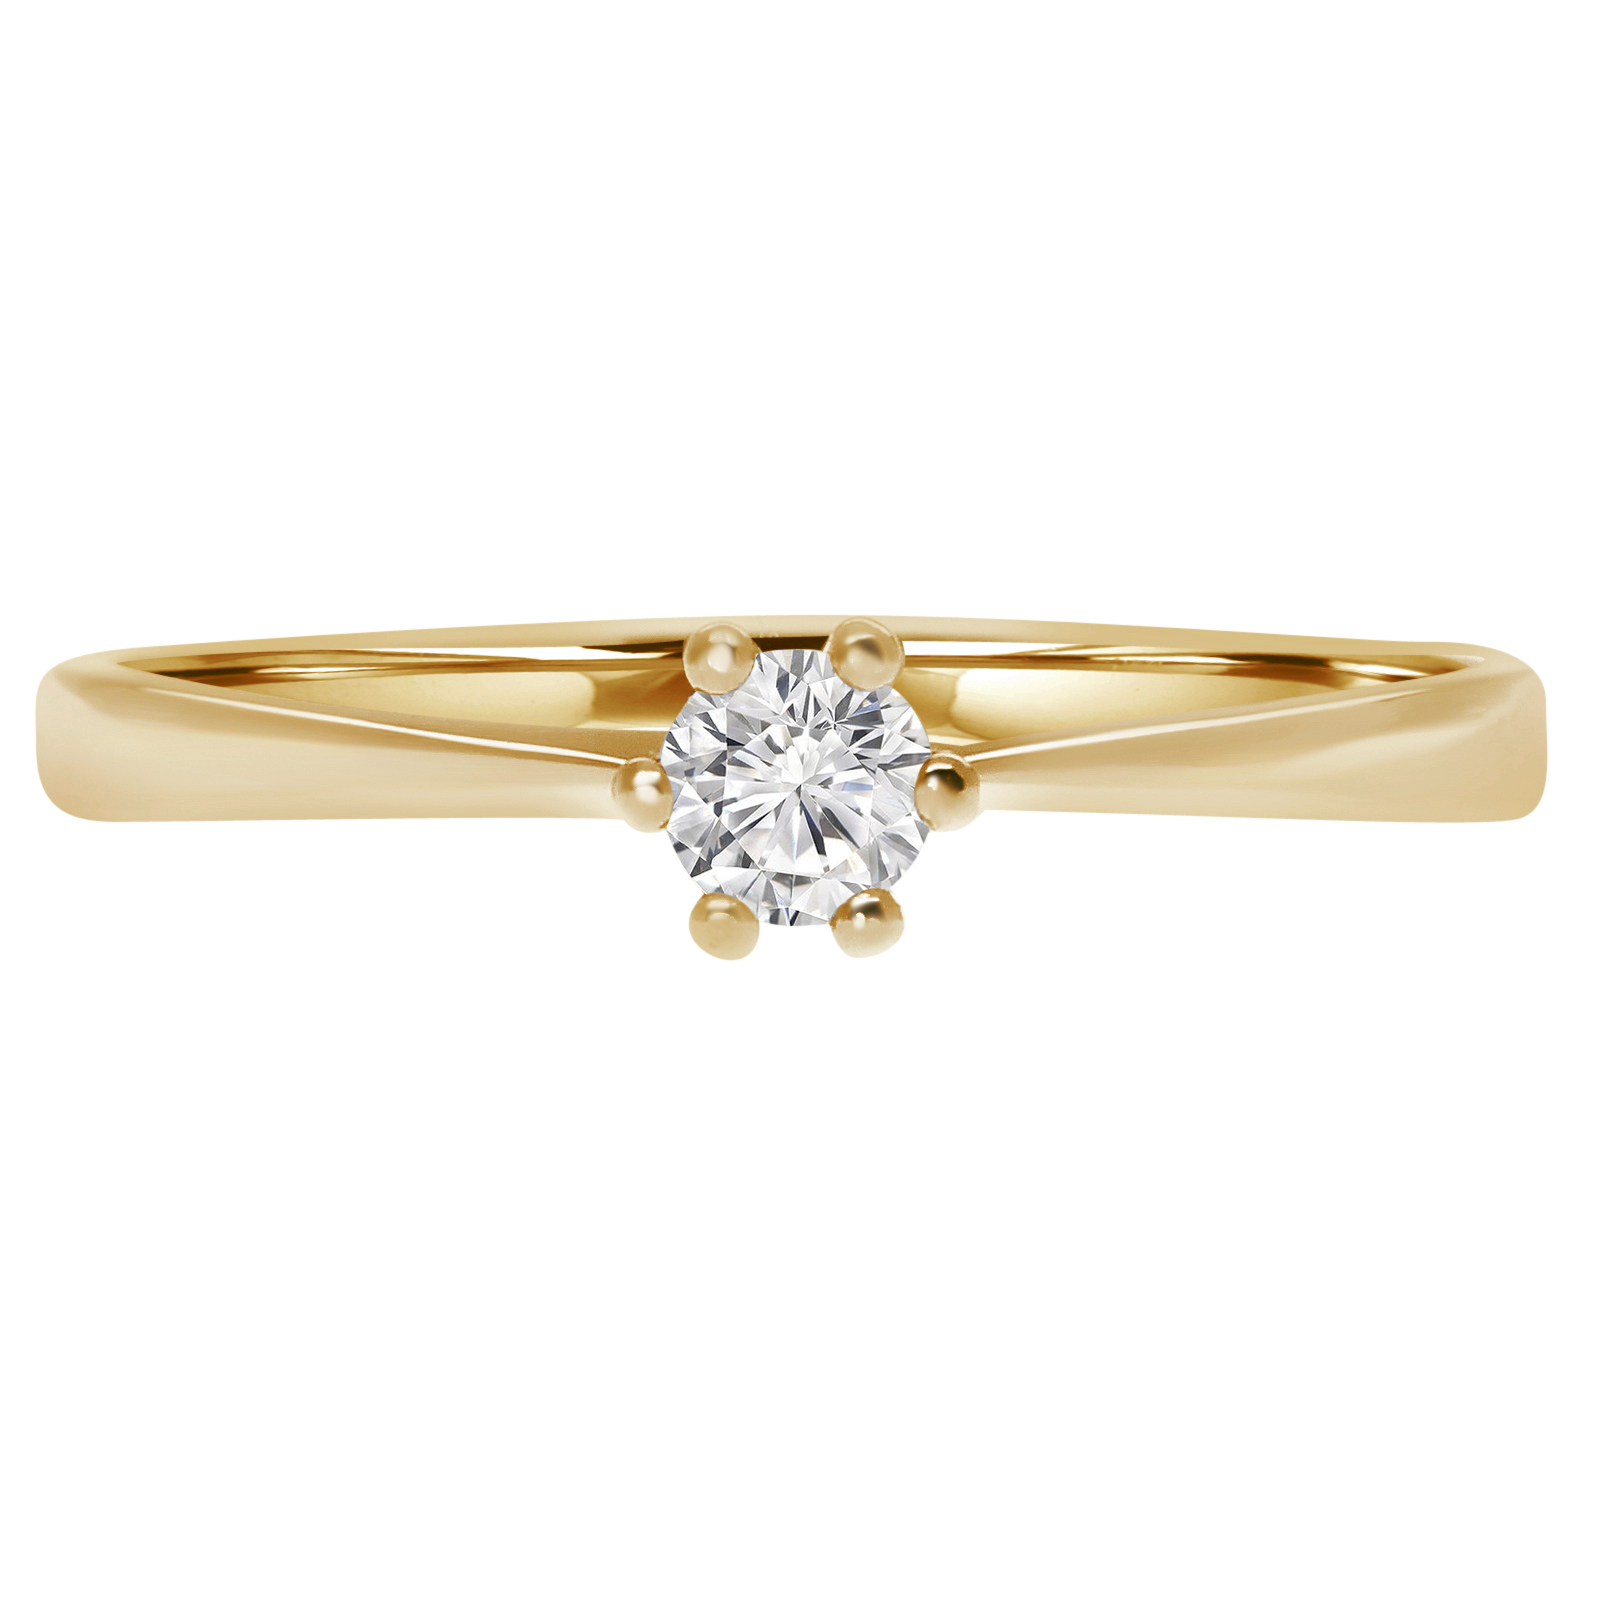 16 Ct Ring Gold Yellow 10K Engagement Solitaire Diamond With Regard To Most Popular Certified Diamond Five Row Anniversary Bands In White Gold (View 9 of 25)